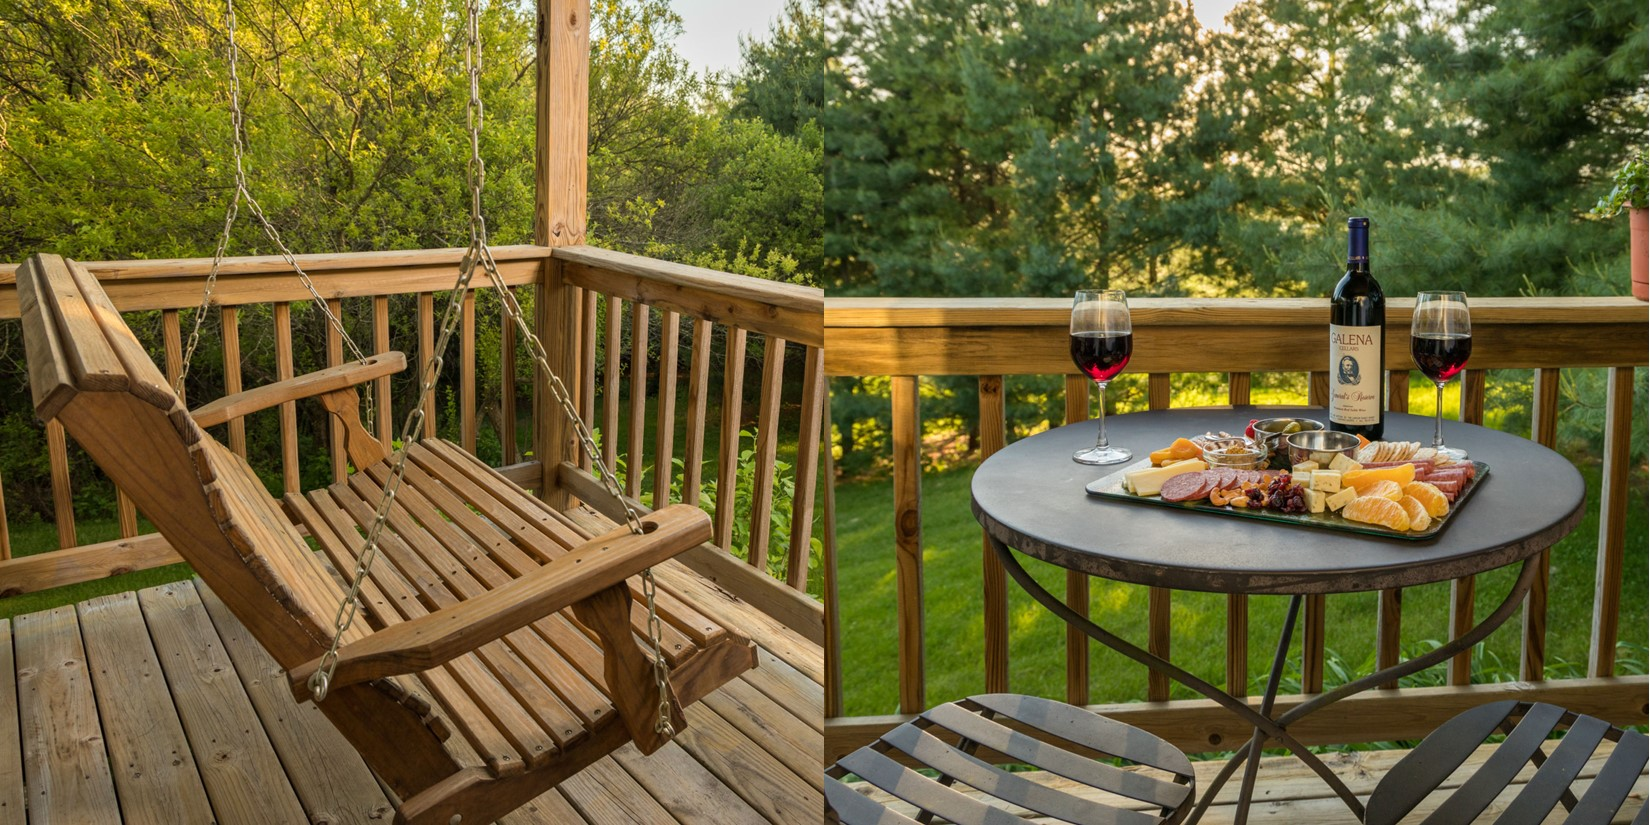 split picture showing porch spring on the left and a bistro table with wine and a charcuterie board on the right